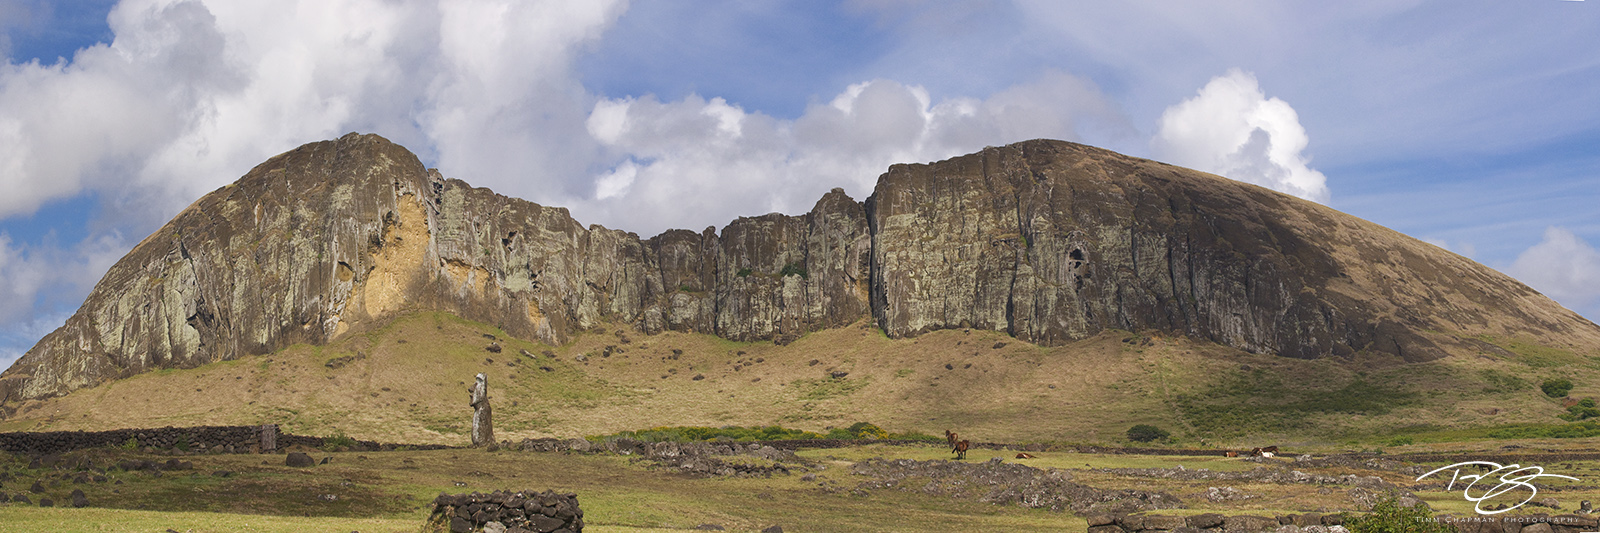 """Rapa Nui (or Easter Island as it is commonly known) is most known for its giant statues, called 'Moai' (pronounced """"Moe-Eye"""")..."""